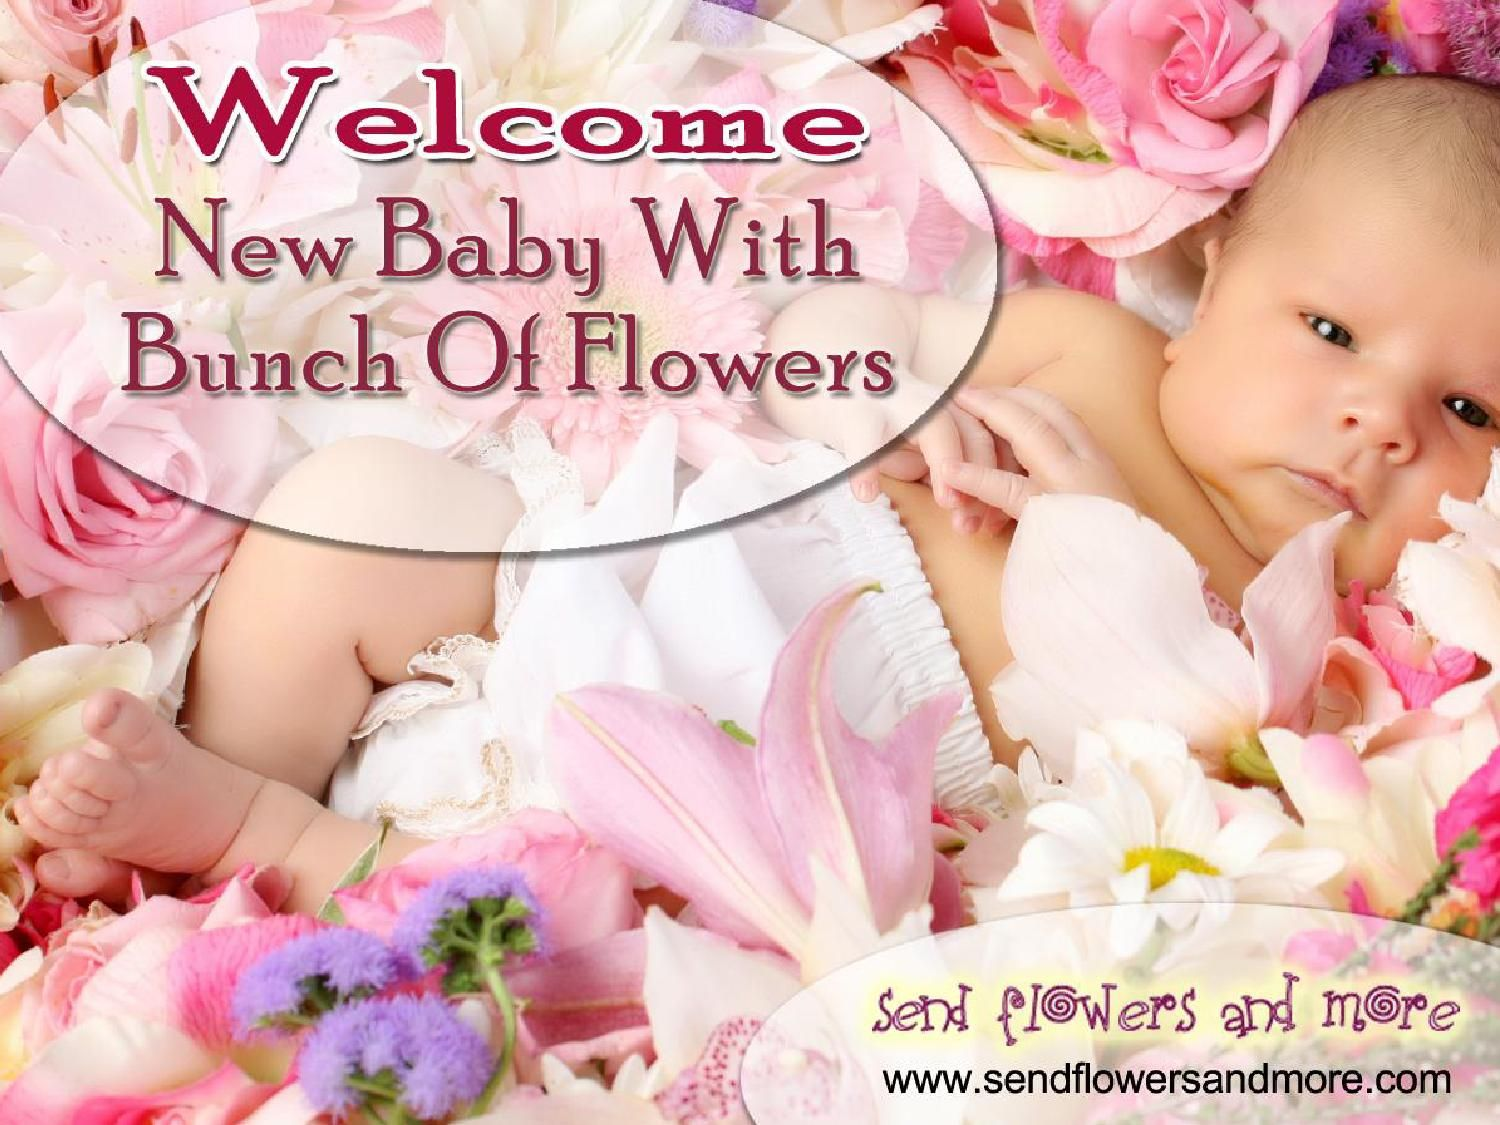 Welcome new baby with bunch of flowers izmirmasajfo Image collections